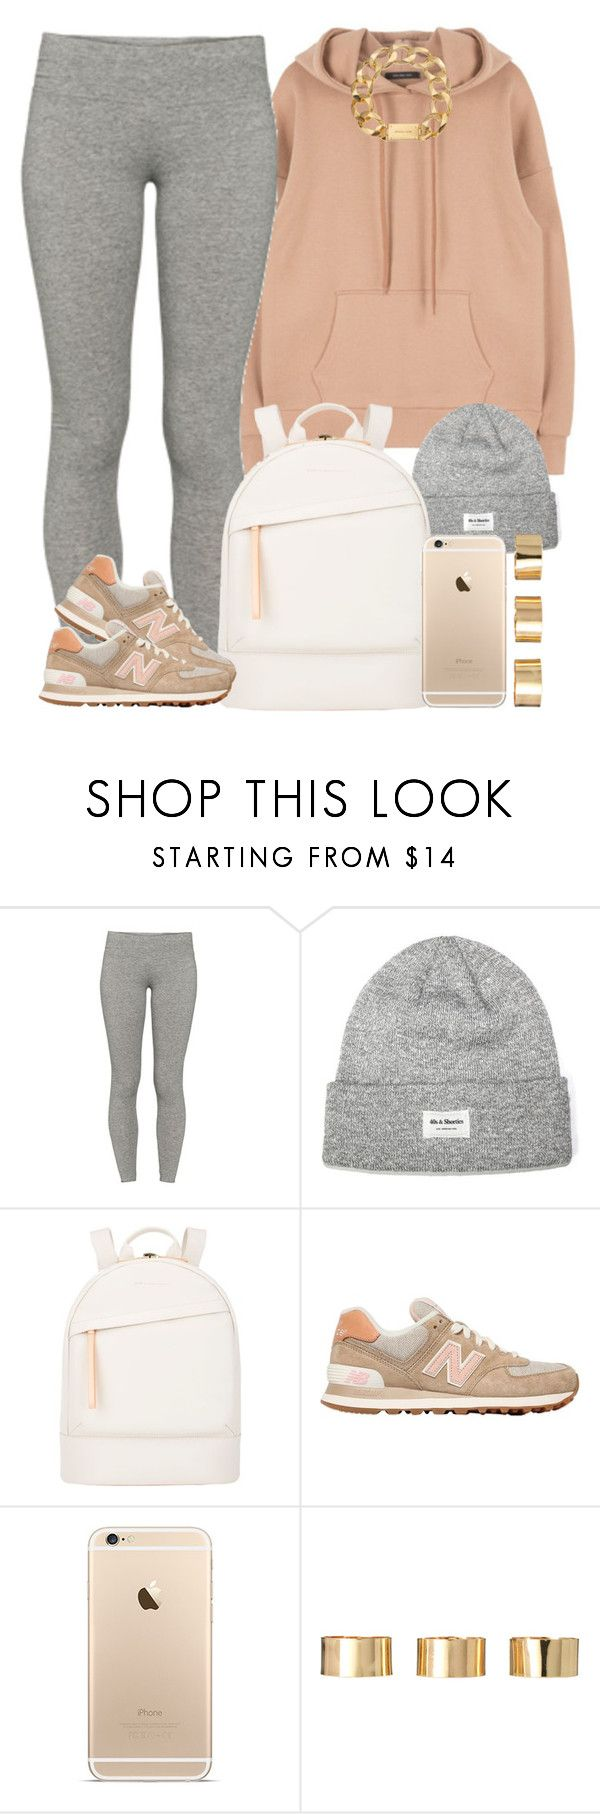 """""""."""" by livelifefreelyy ❤ liked on Polyvore featuring TNA, Want Les Essentiels de la Vie, New Balance, ASOS and Michael Kors"""